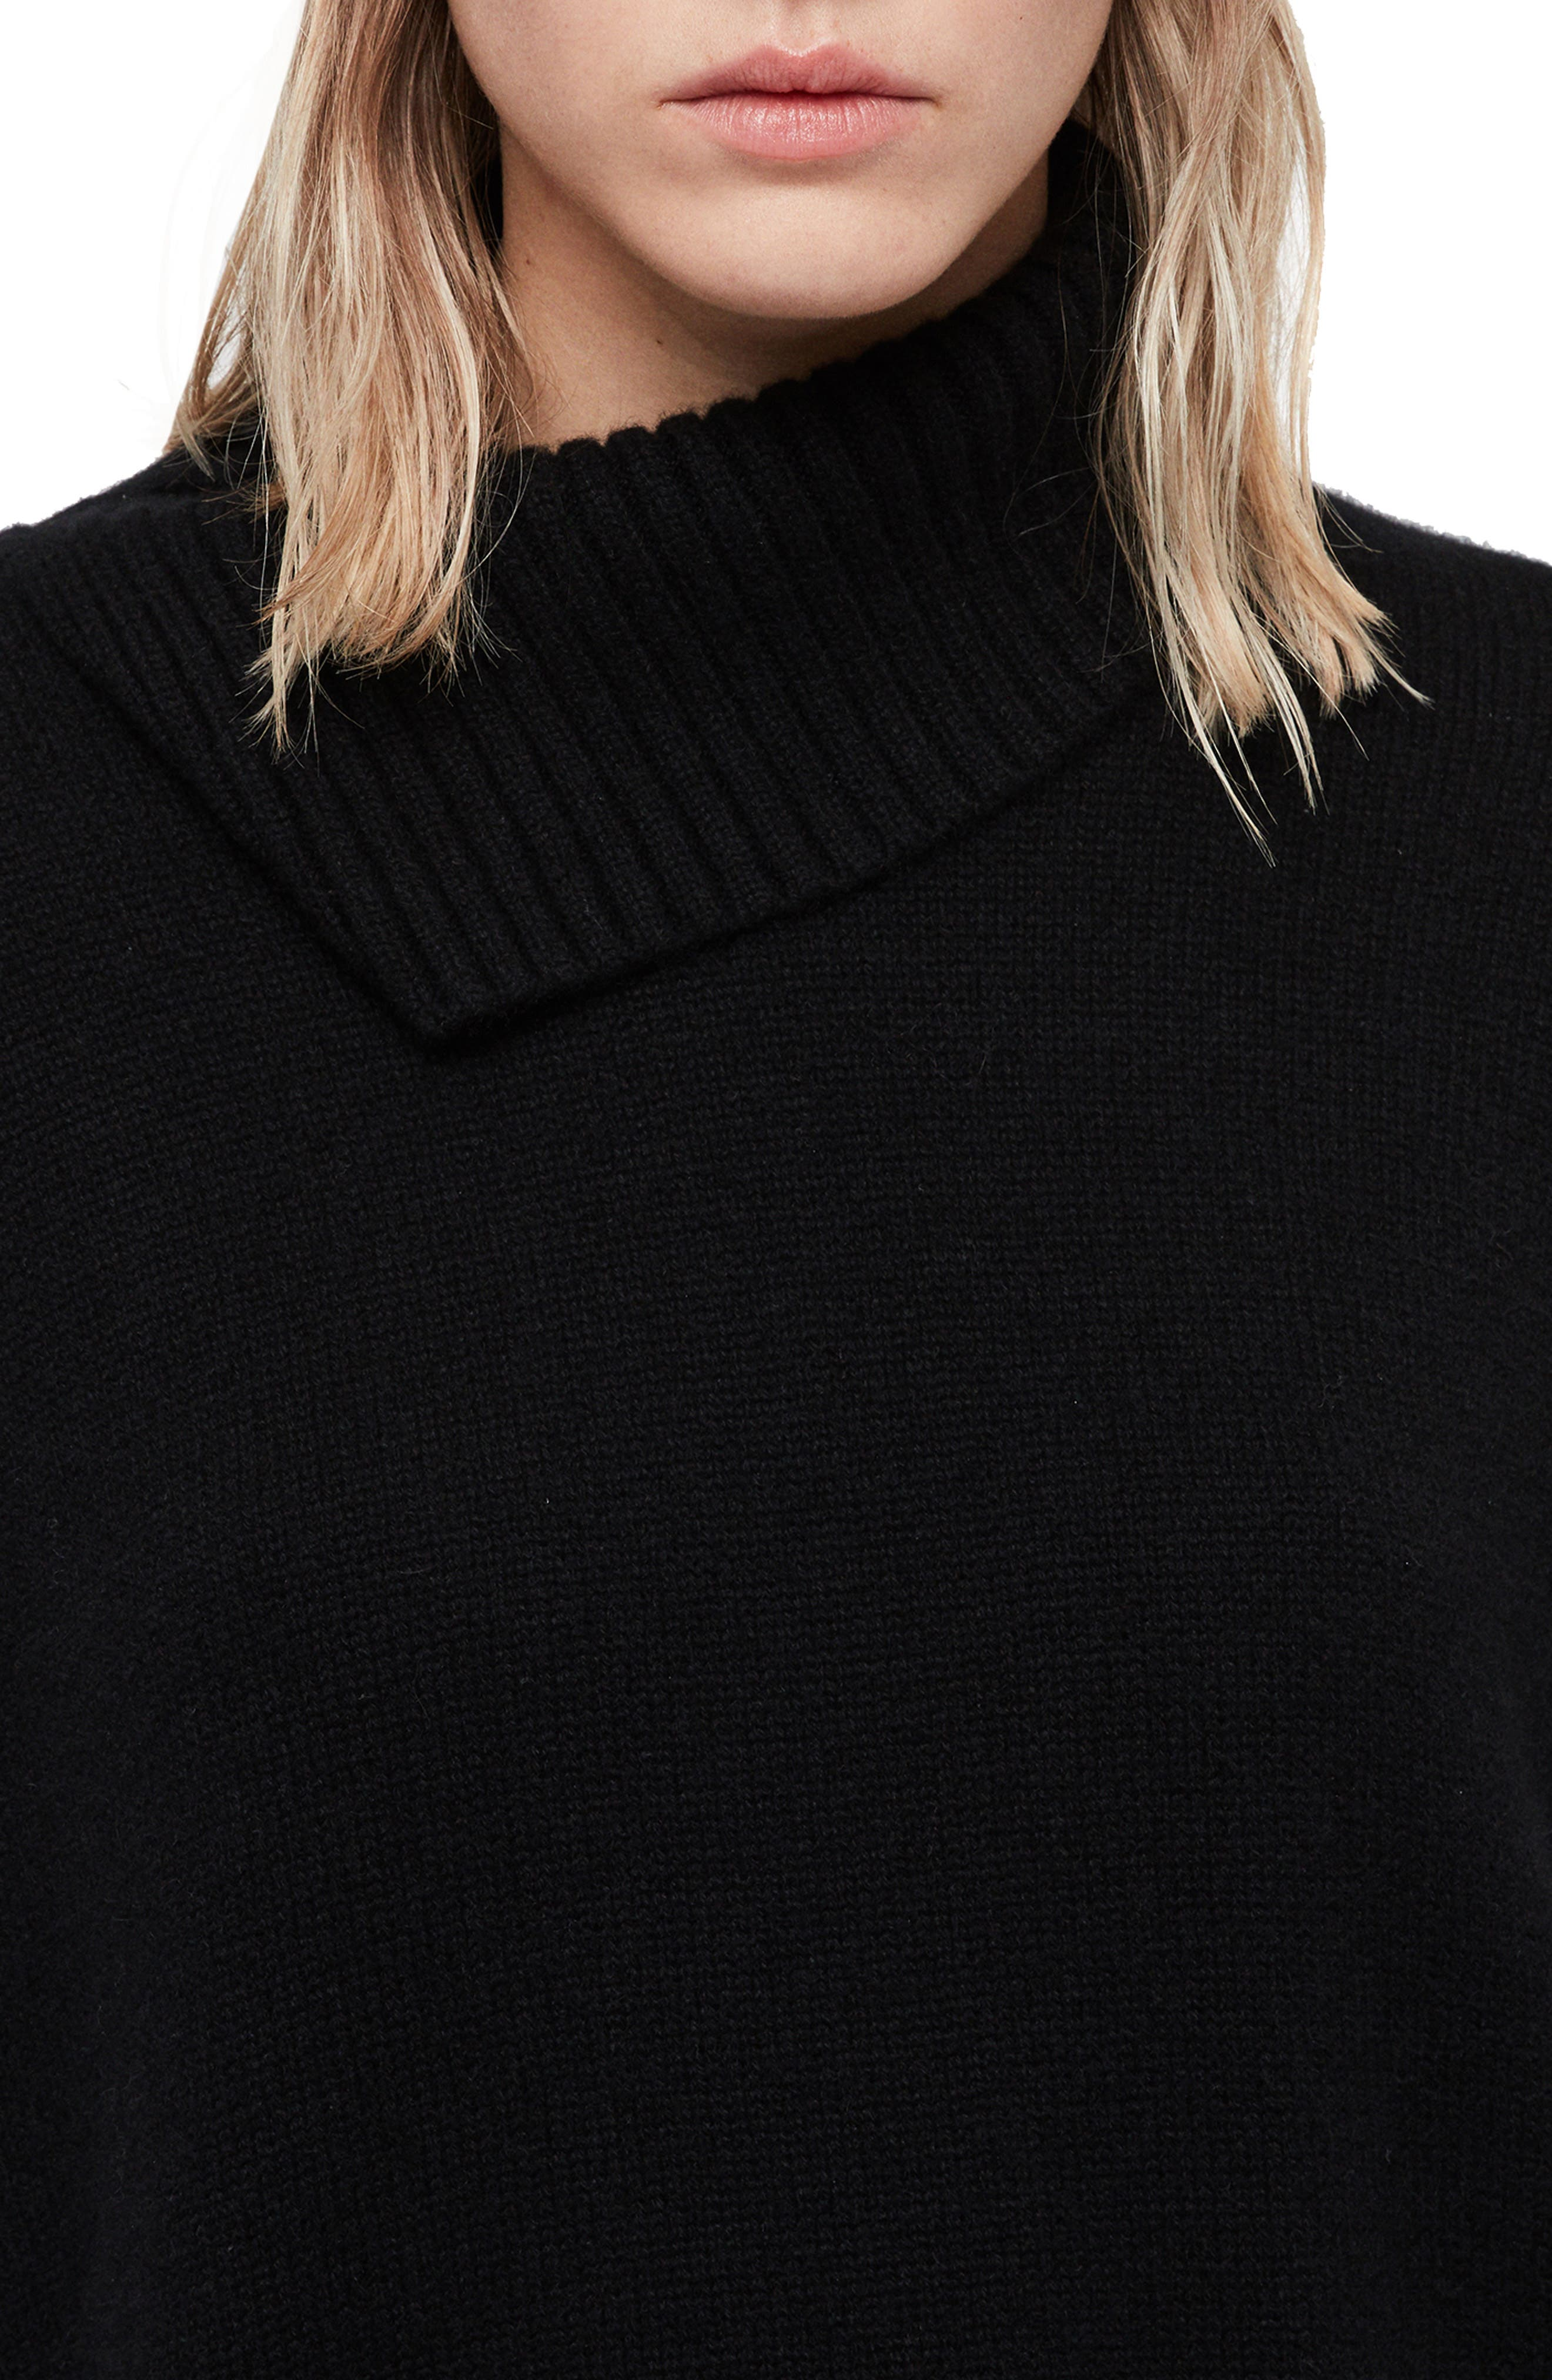 Witby Roll Neck Cashmere Sweater,                             Alternate thumbnail 4, color,                             BLACK